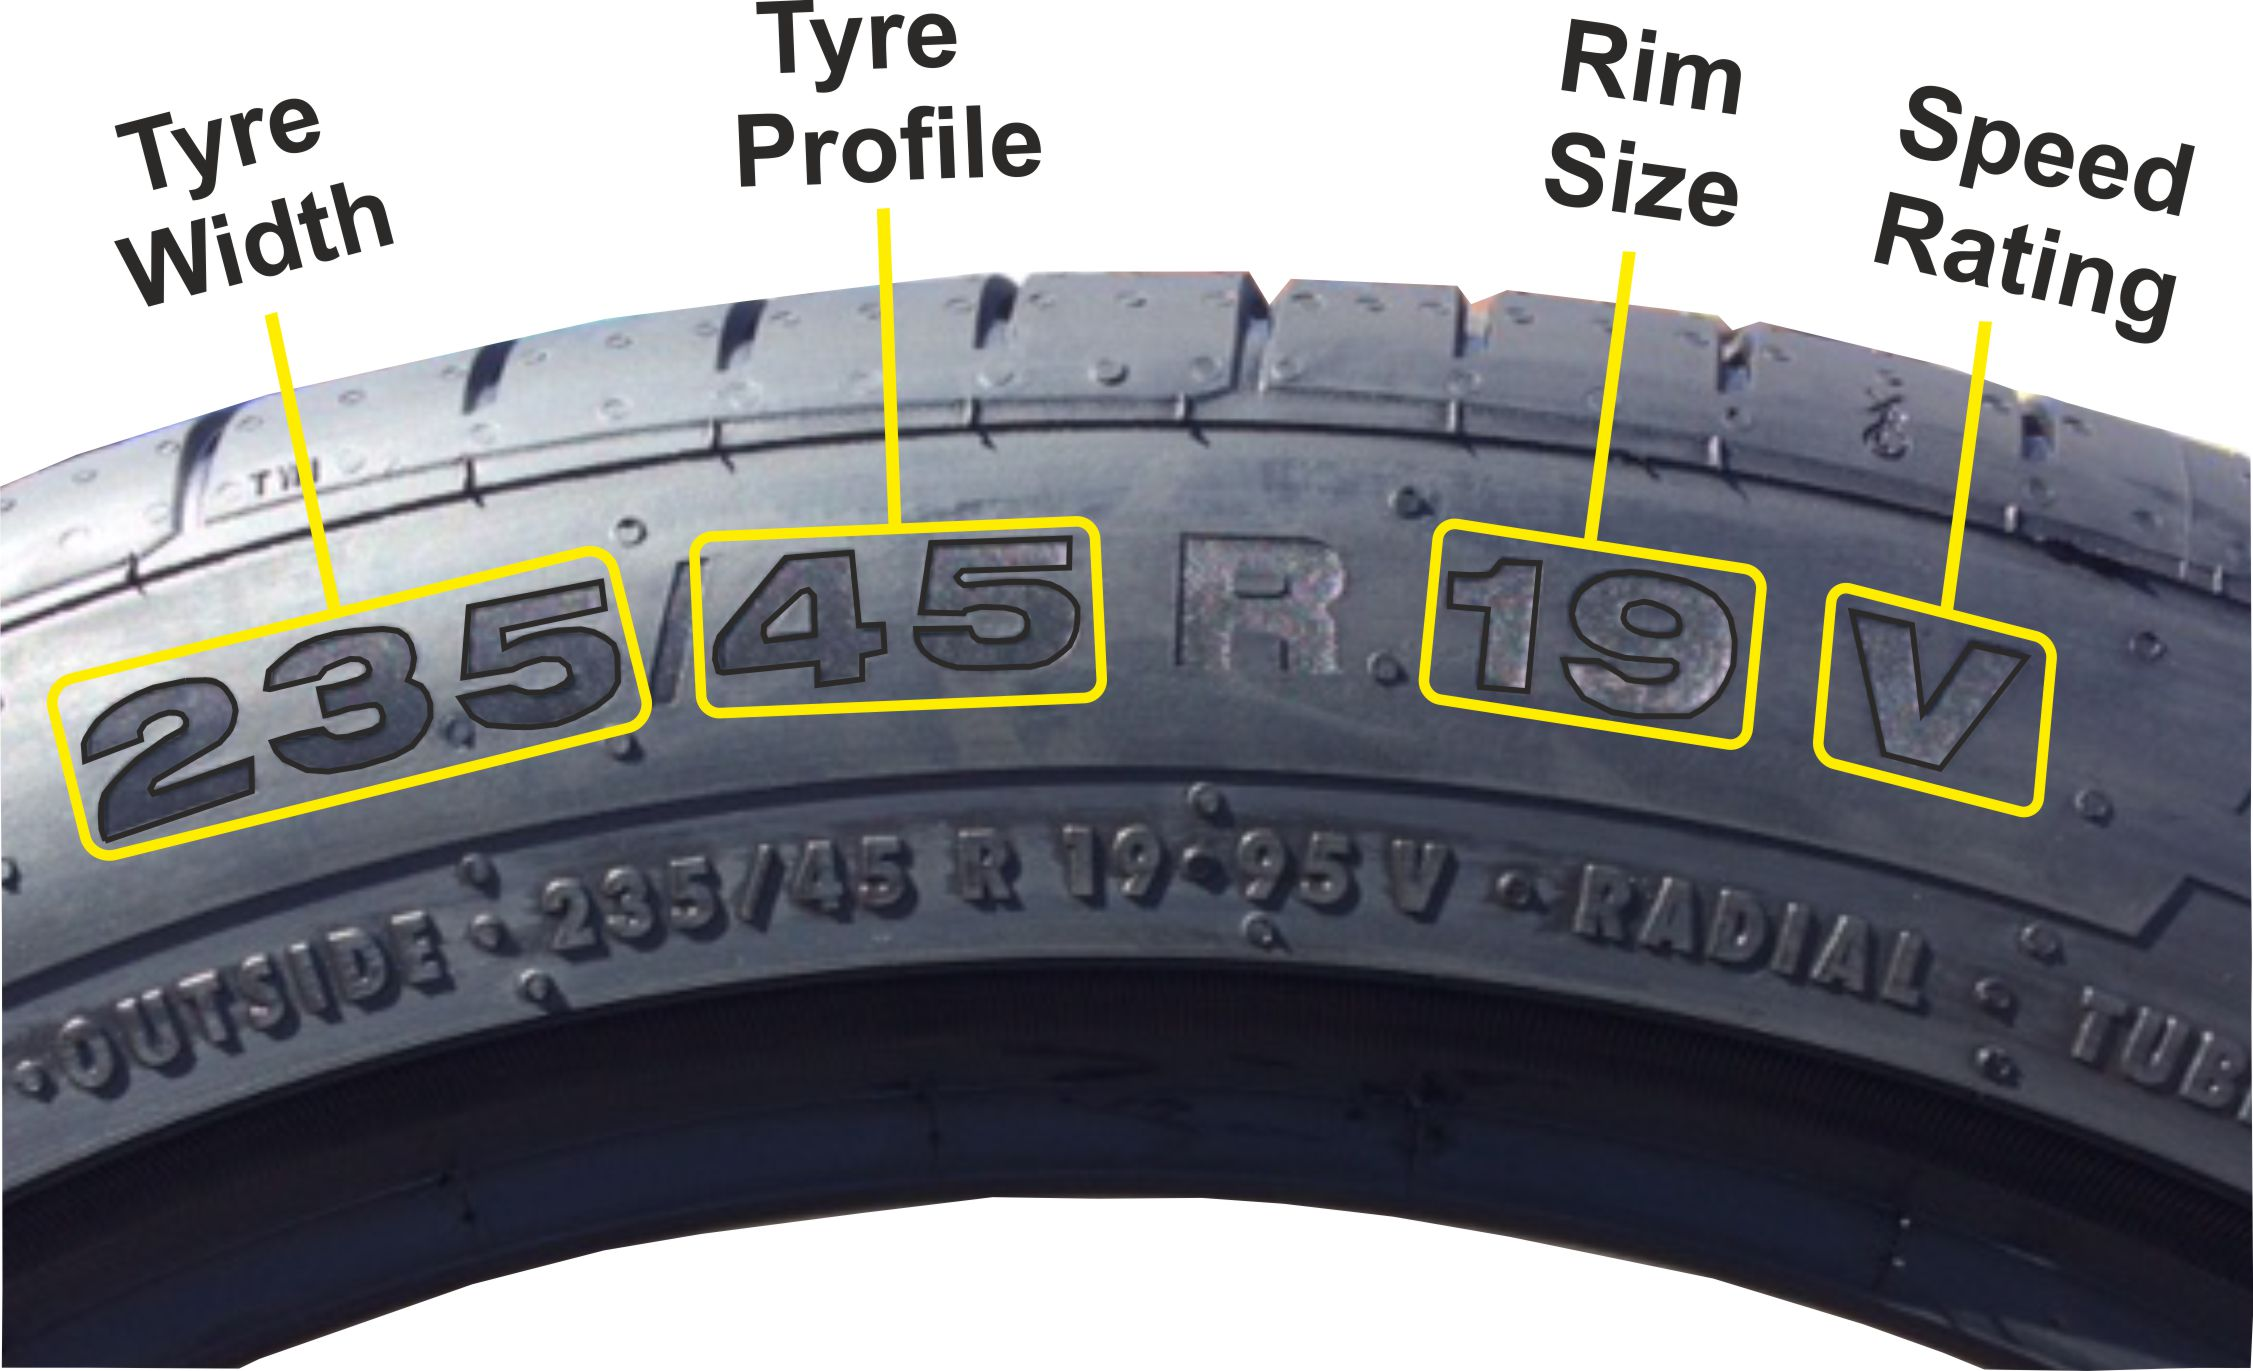 Tyre Search